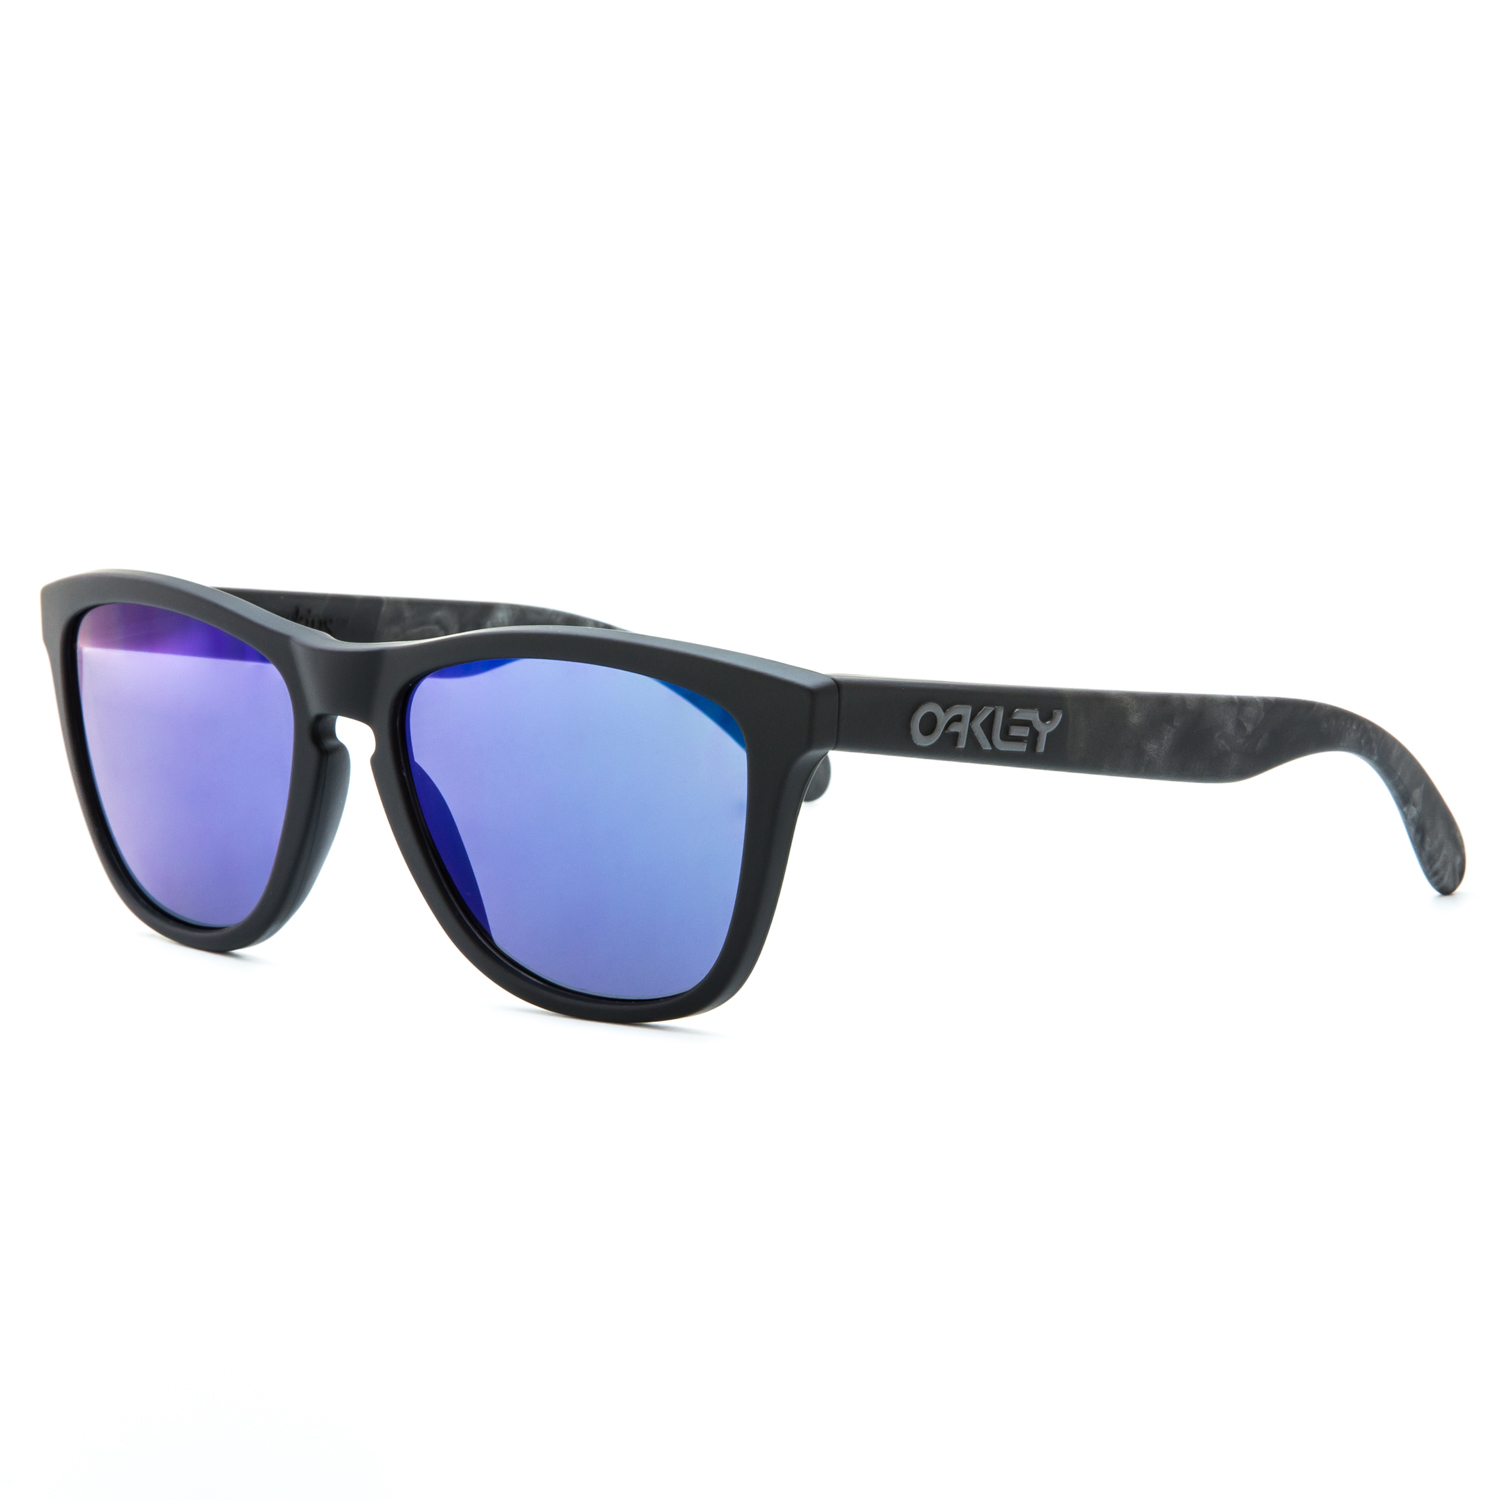 oakley blue sunglasses  Oakley Soft to Touch Collection Sunglasses OO9013 24-398 Skulls ...